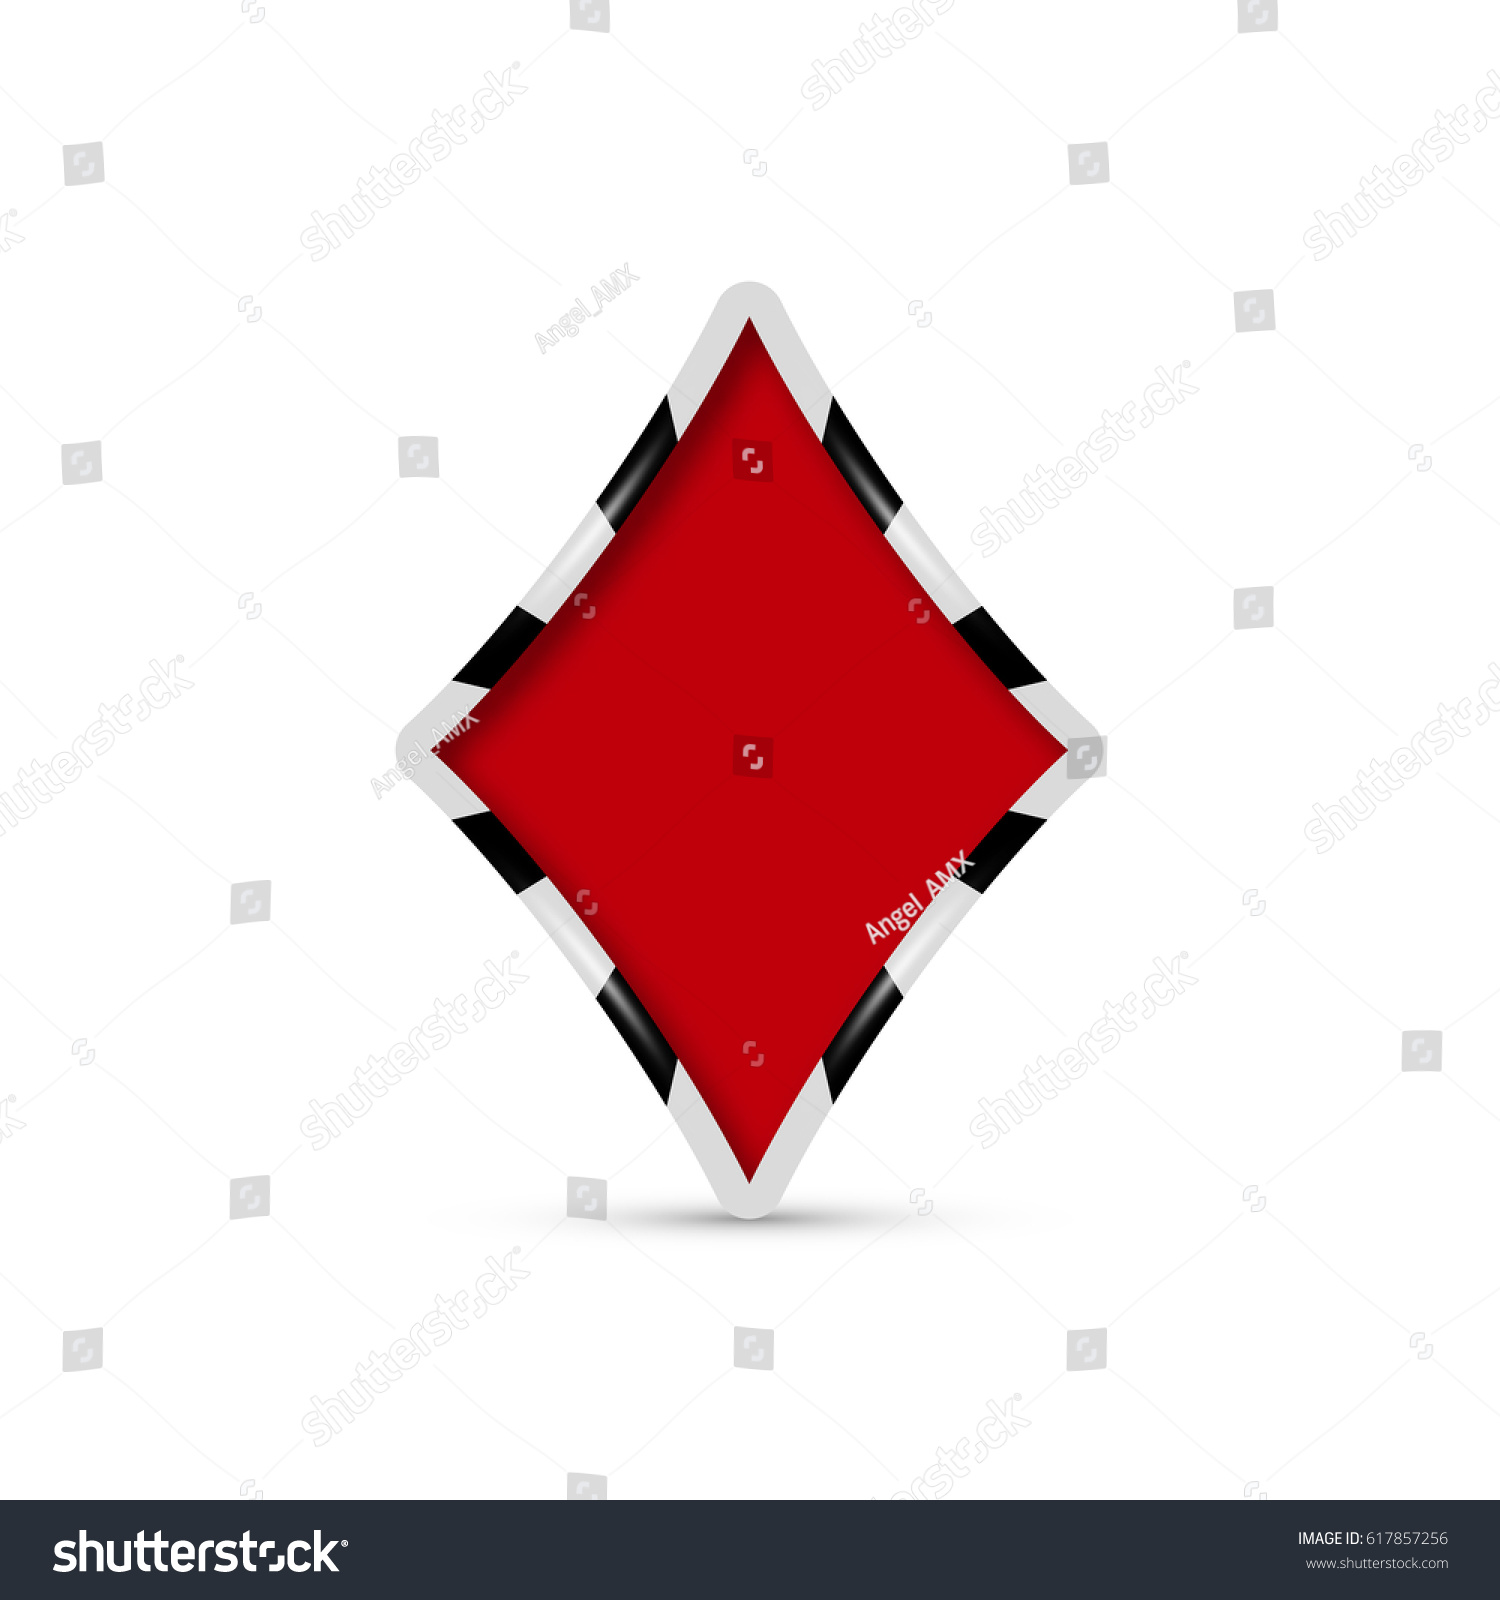 stock of poker card icon casino image photo diamonds and ace vector realistic game logo for suit diamond playing